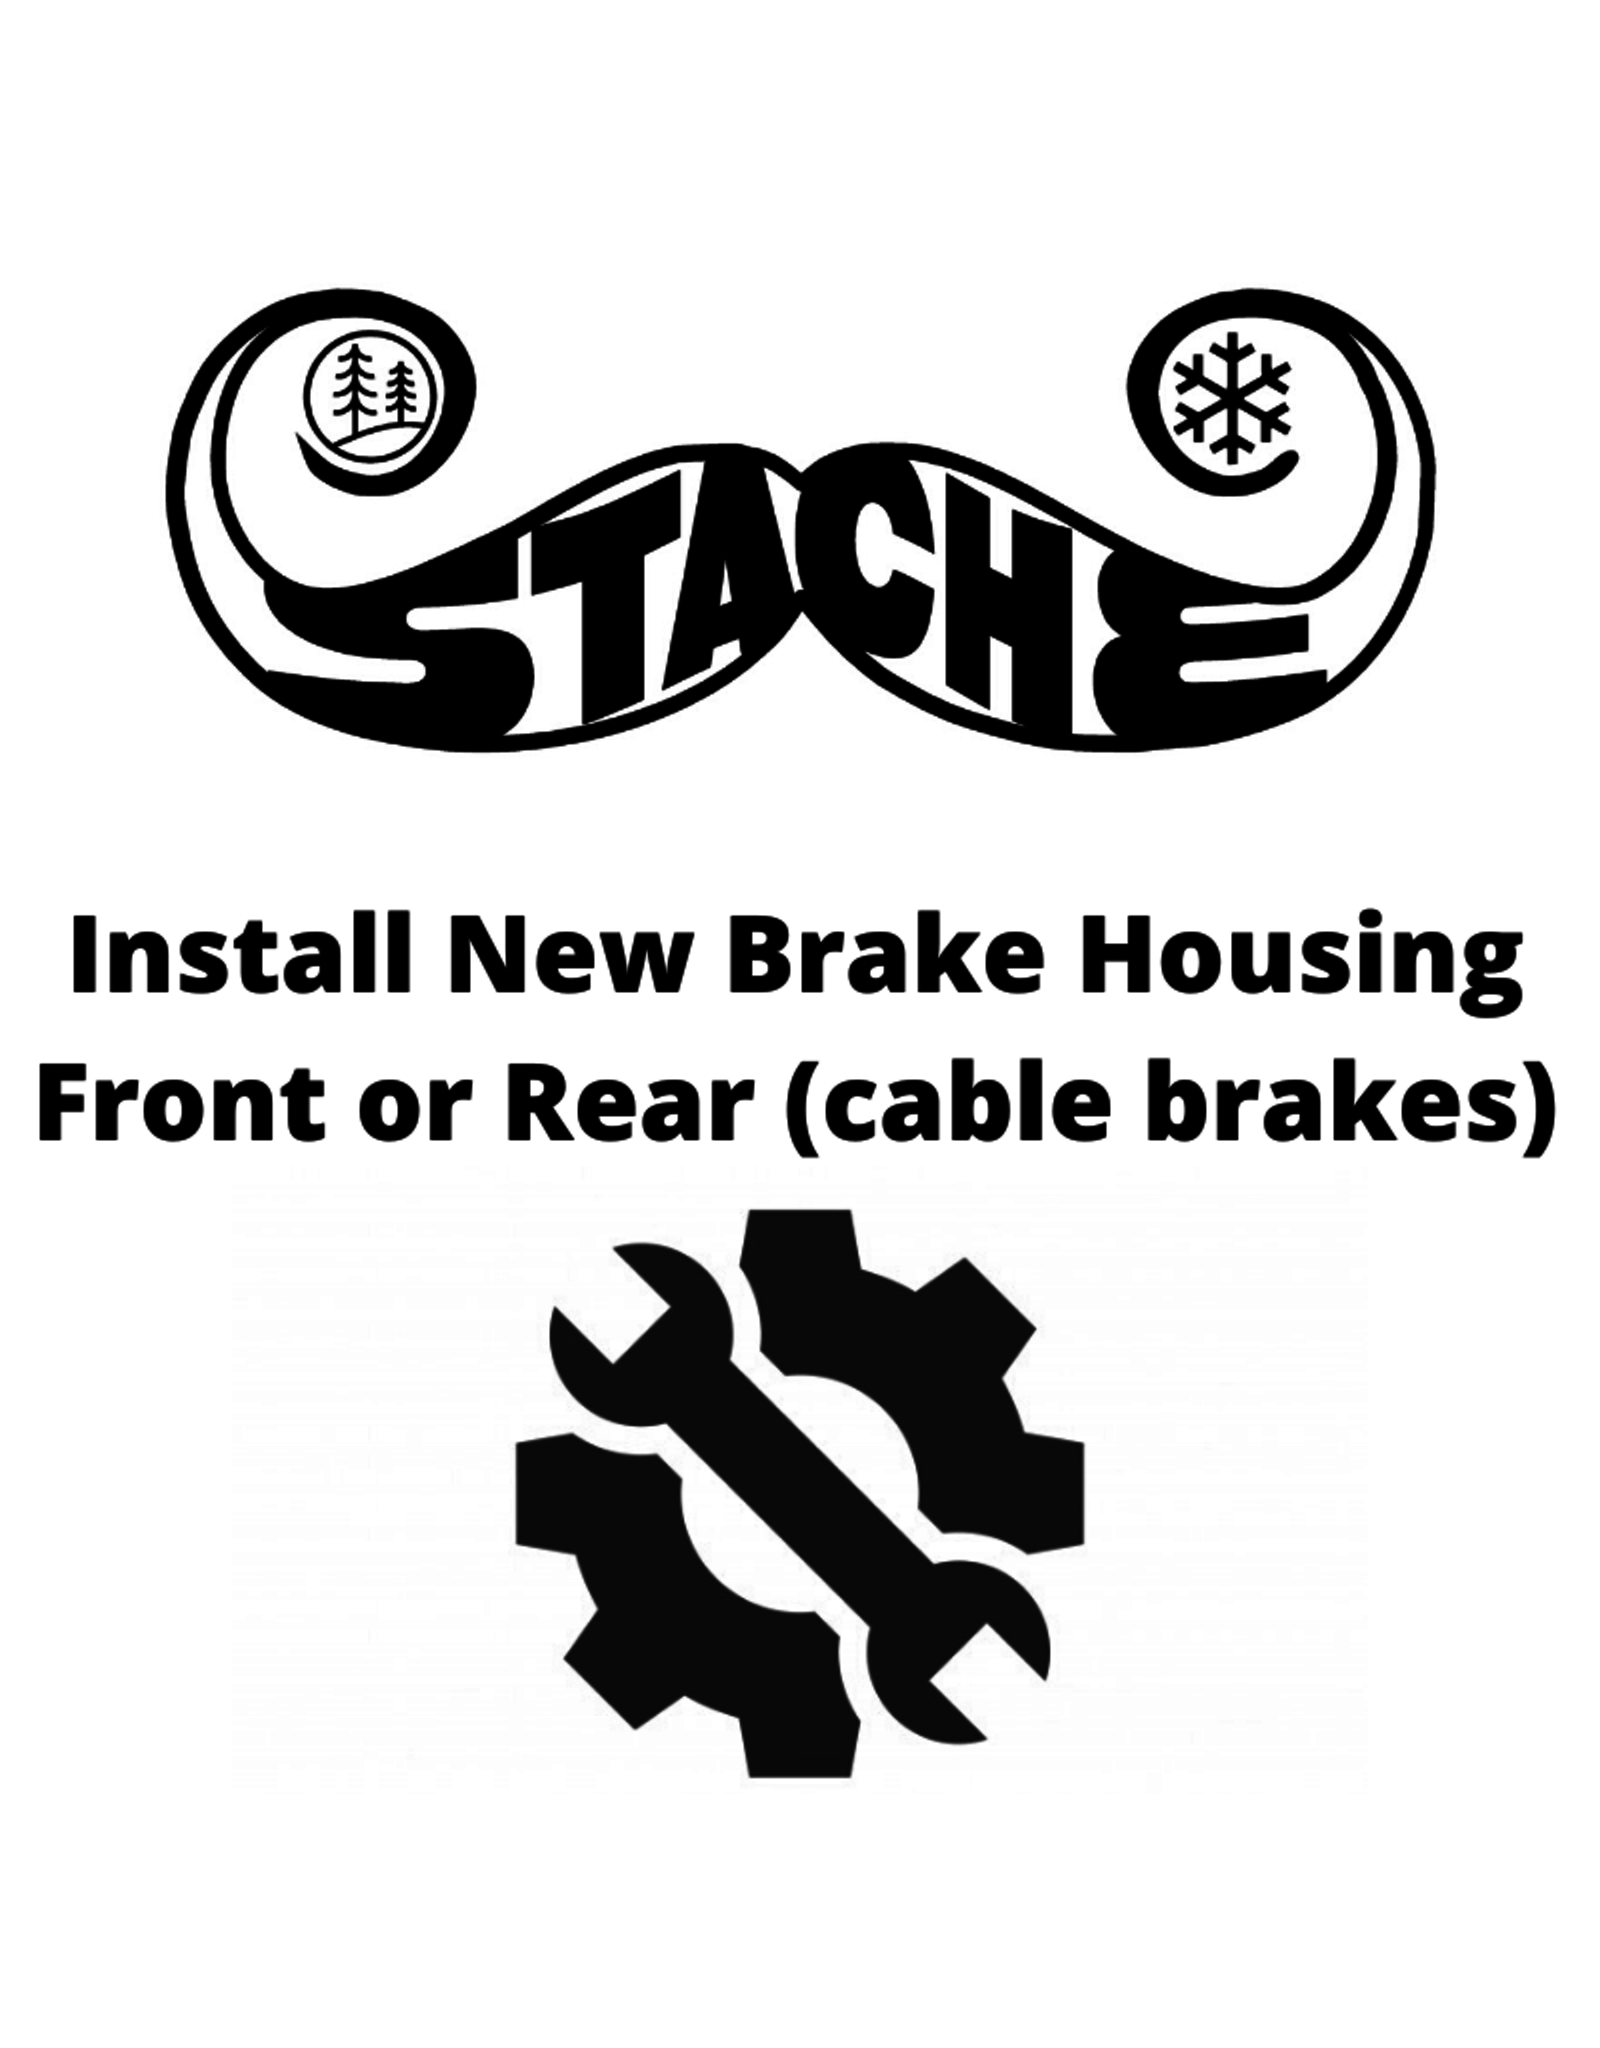 Install New Brake Housing Ft or Rear (cable brakes)